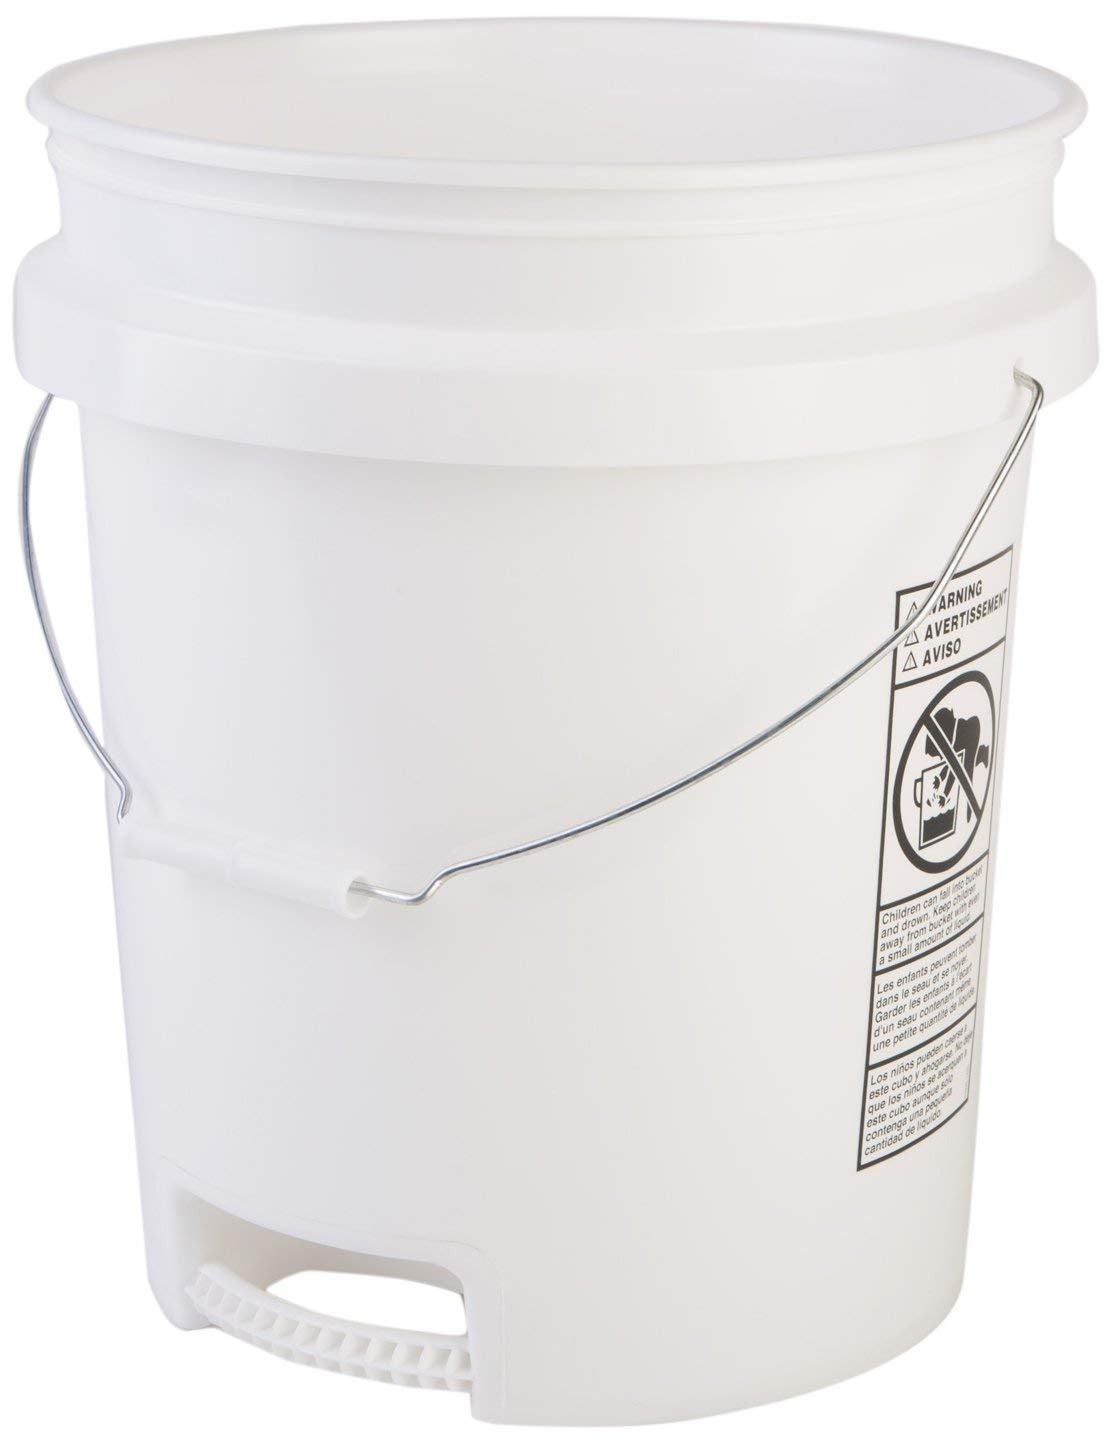 Hudson Exchange 5 Gallon Bucket with Bottom Grip Handle, HDPE, White, 14 Pack by Hudson Exchange (Image #1)